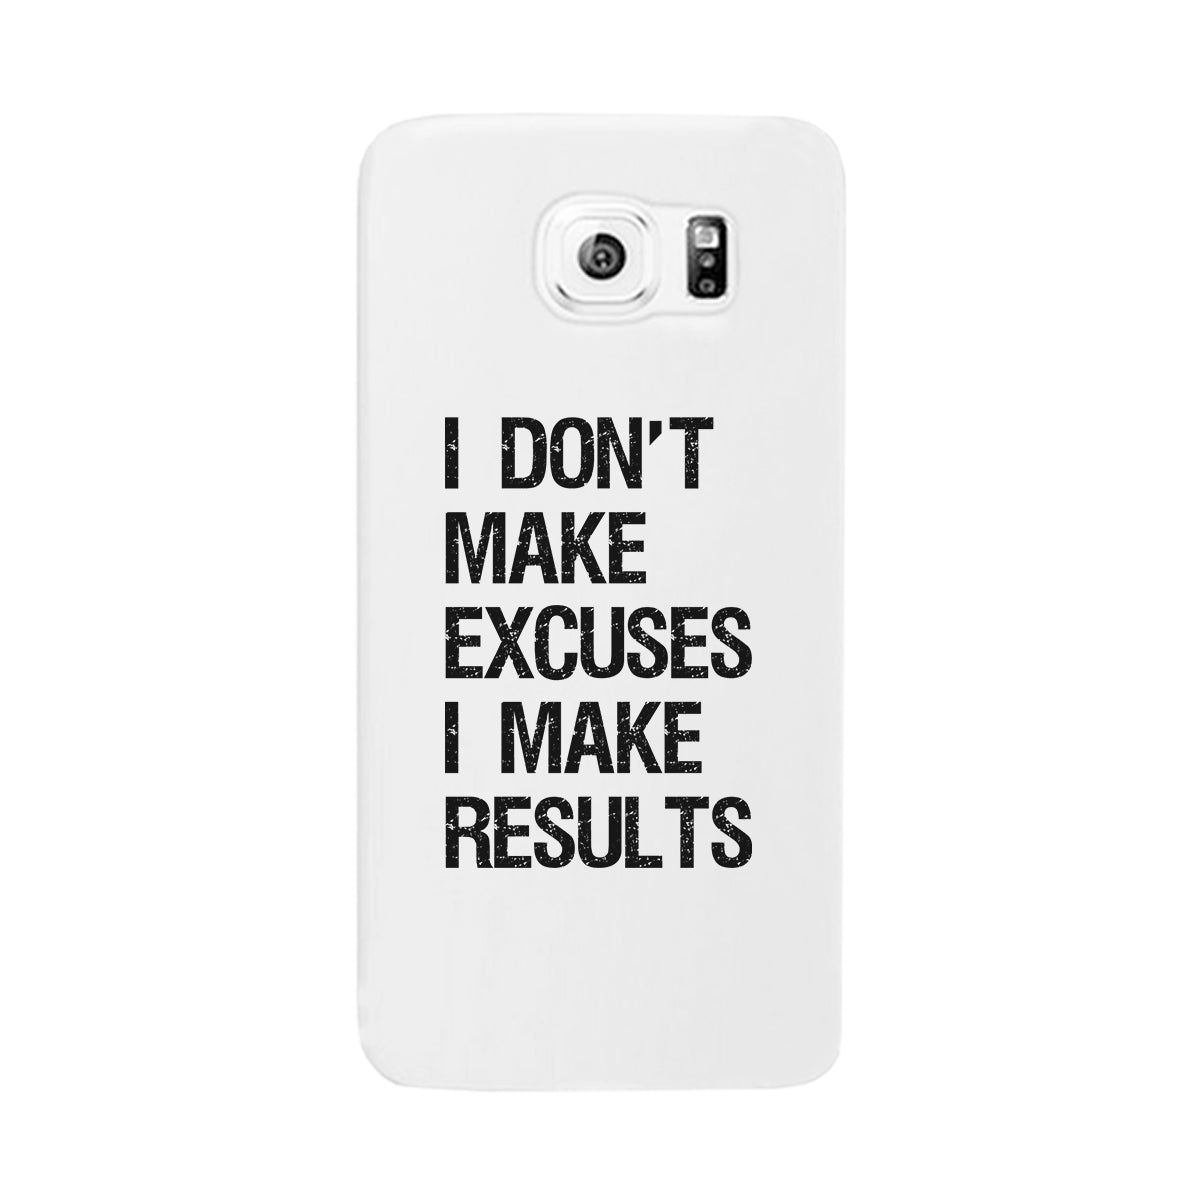 a178243d295ff Excuses Results Phone Case Workout Gift Phone Case